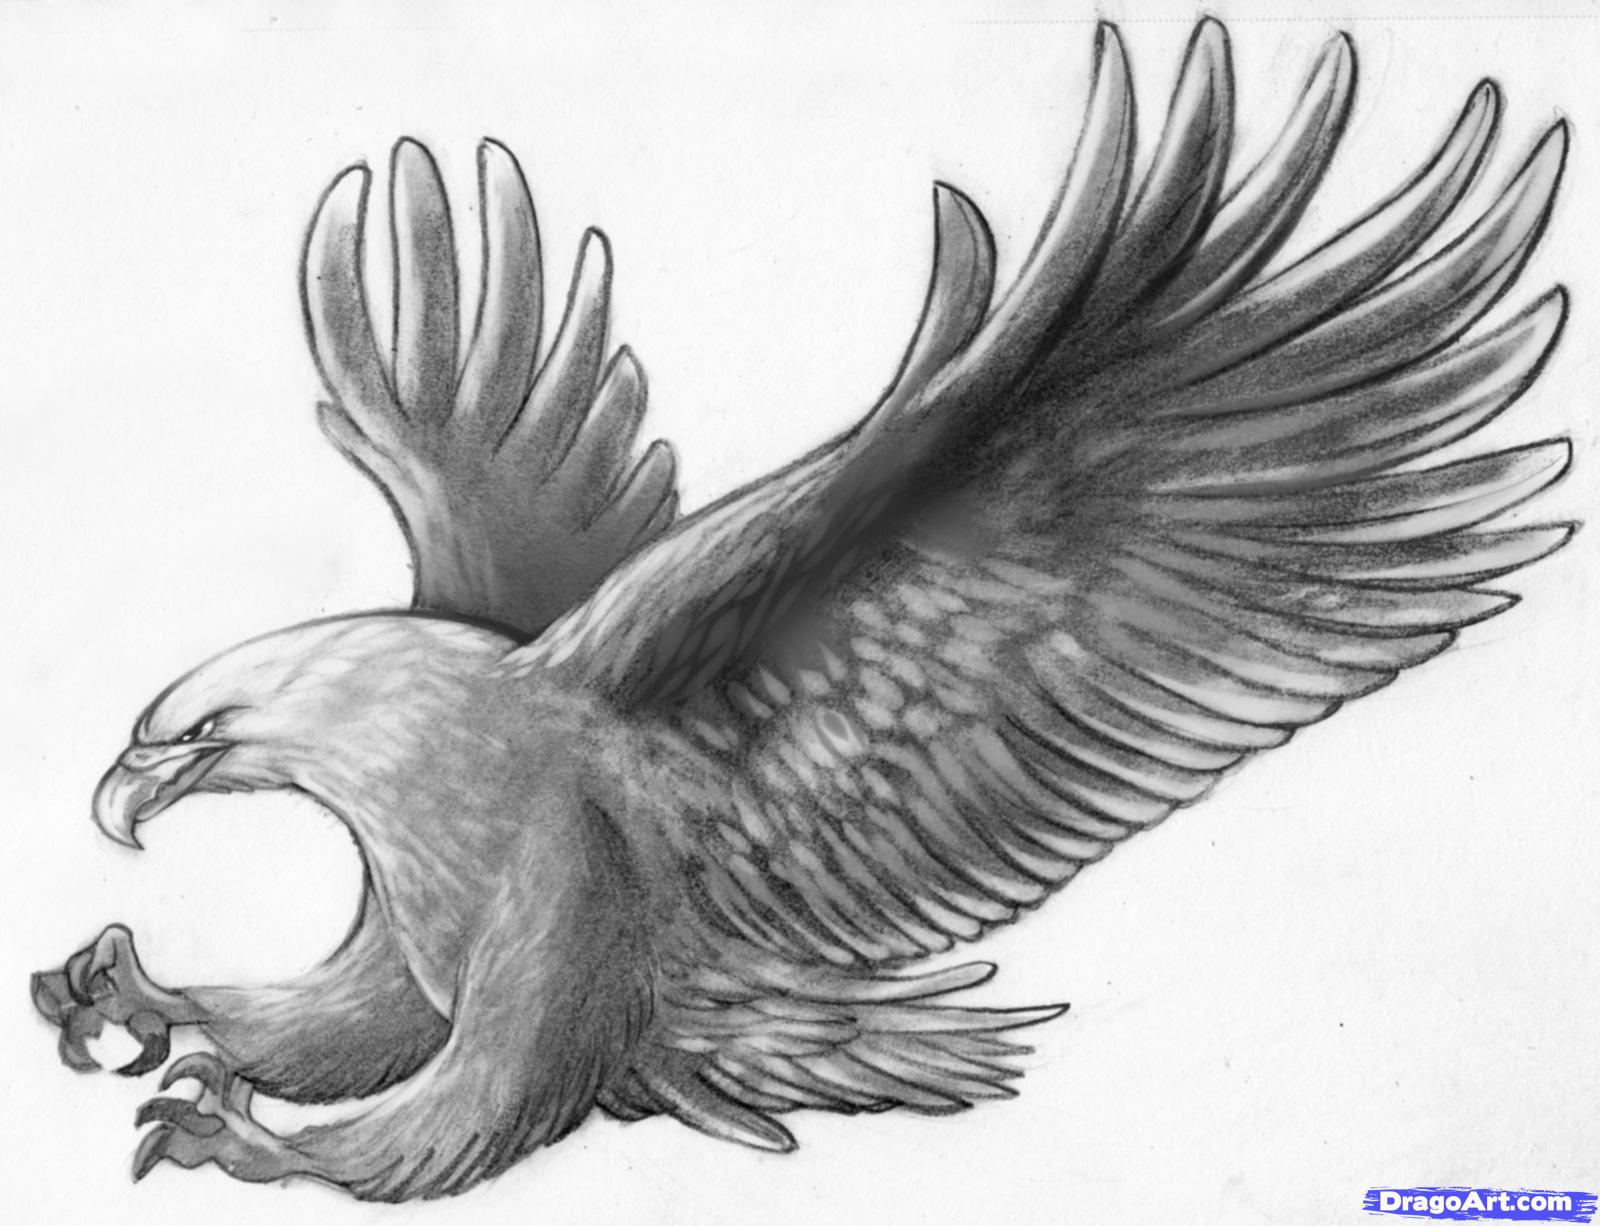 Drawn steller's sea eagle dragoart Eagle eagle in about an